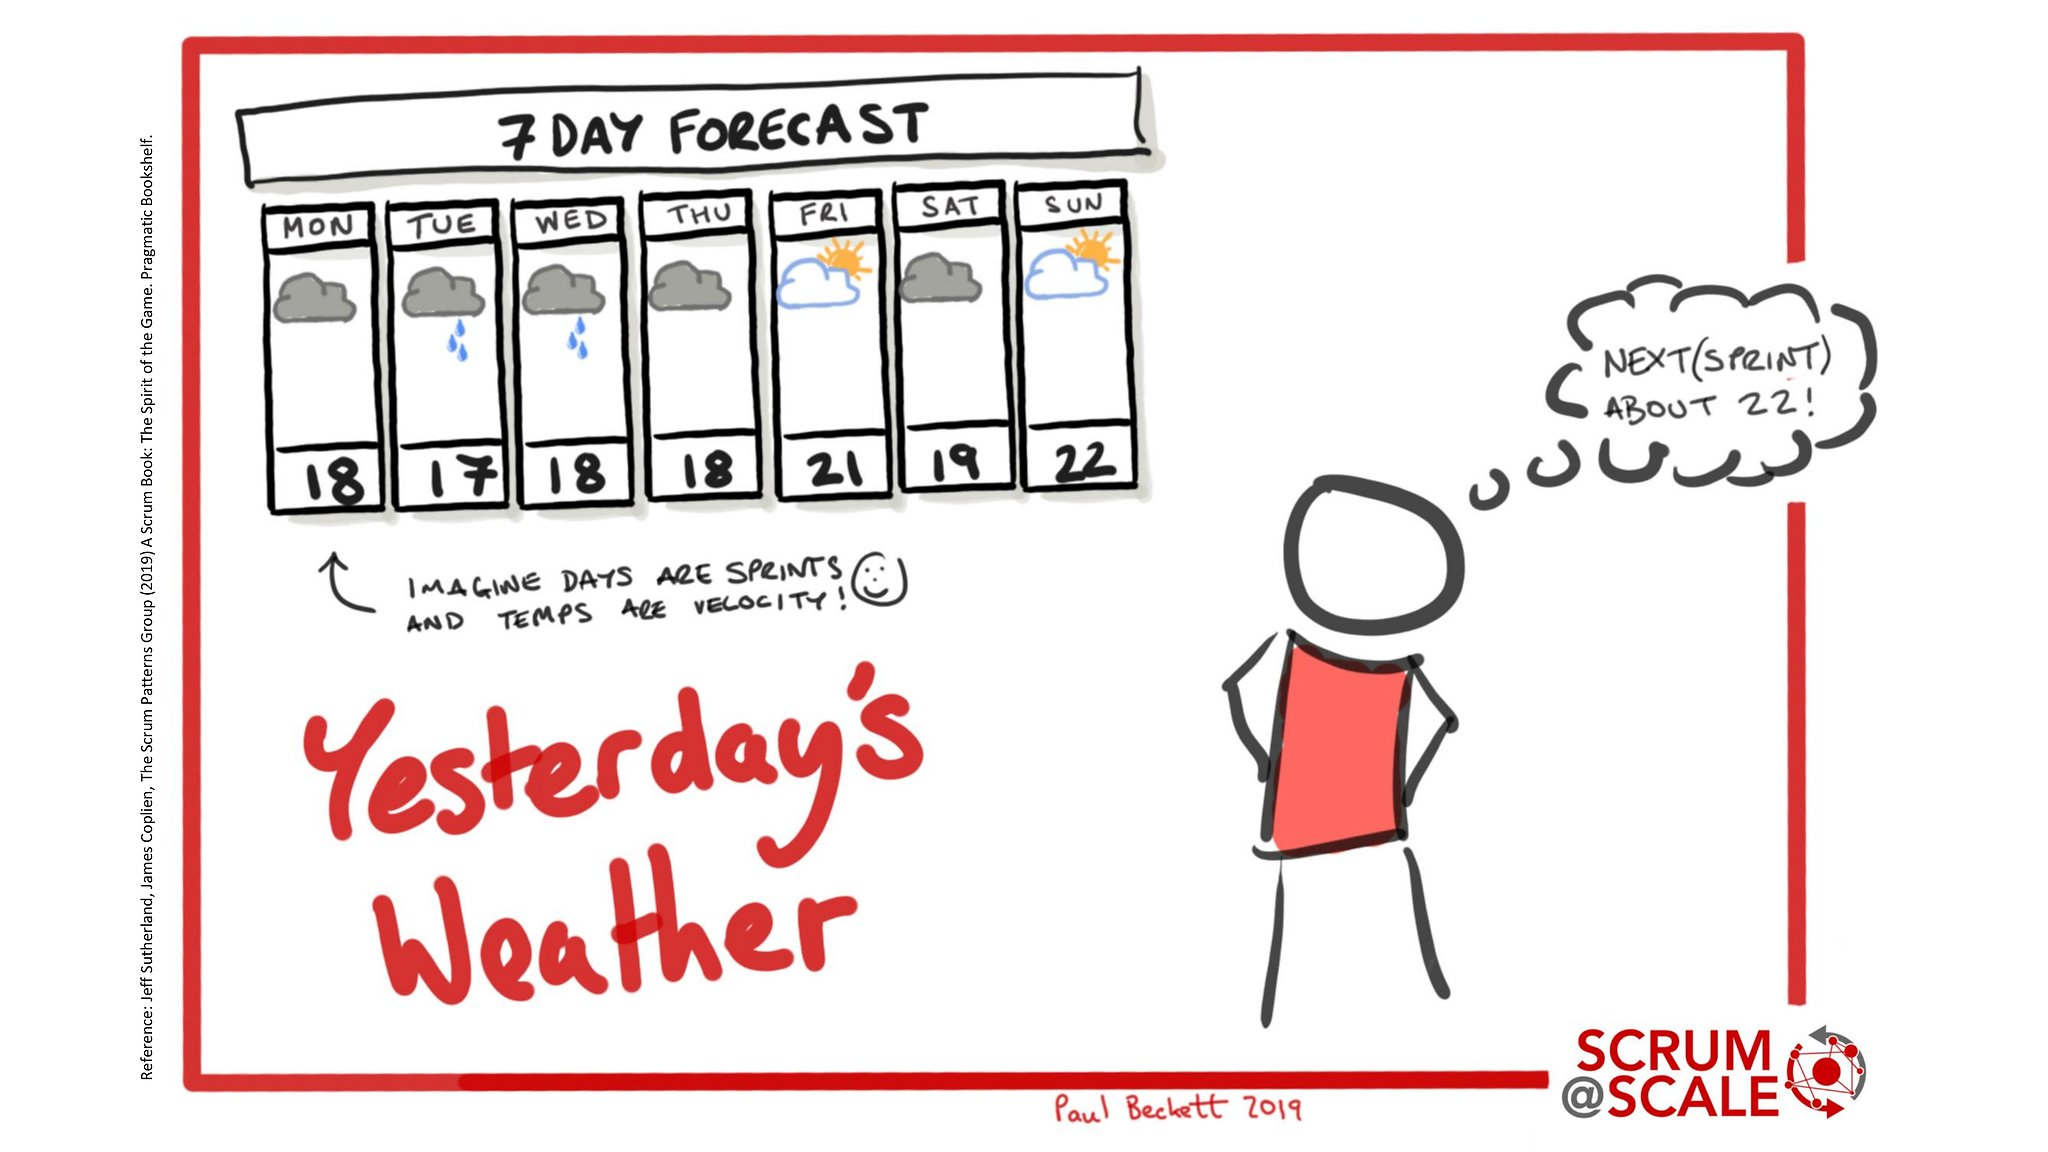 Yesterday's Weather - Recommended Scrum Patterns - Scrum@Scale